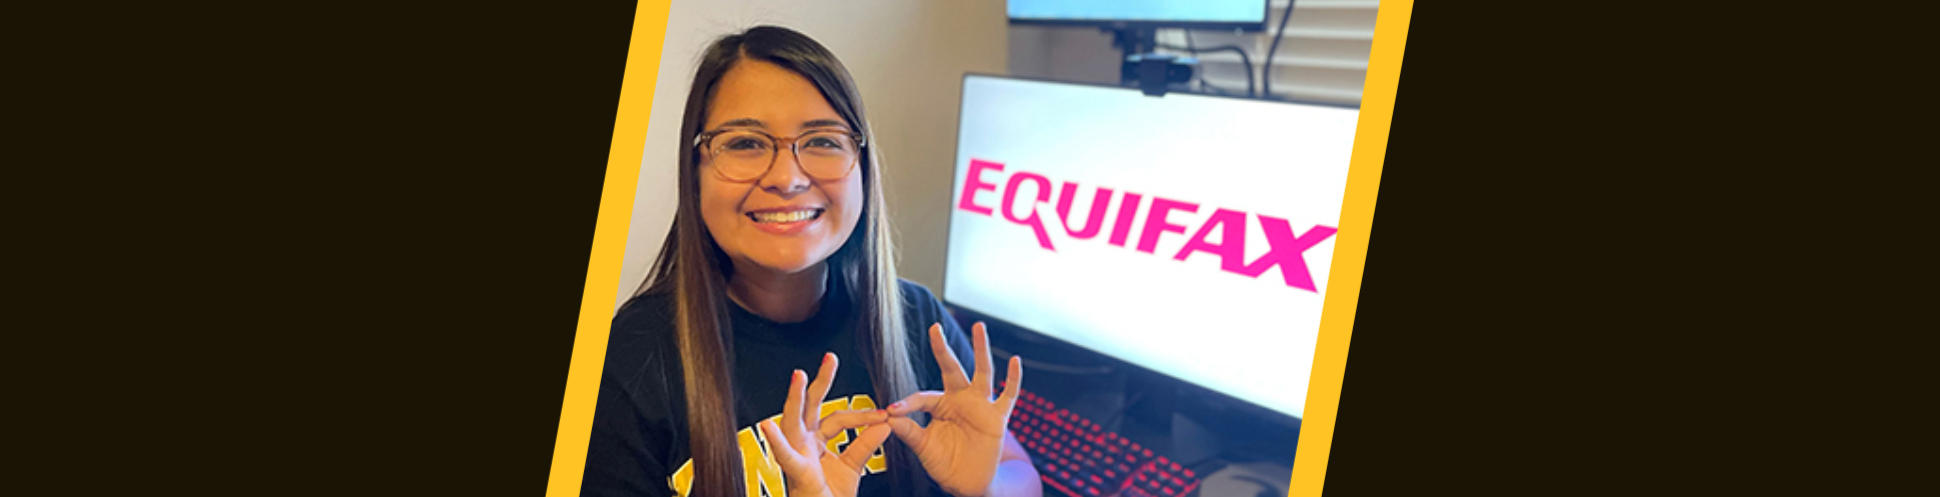 KSU alumnus finds success at Equifax